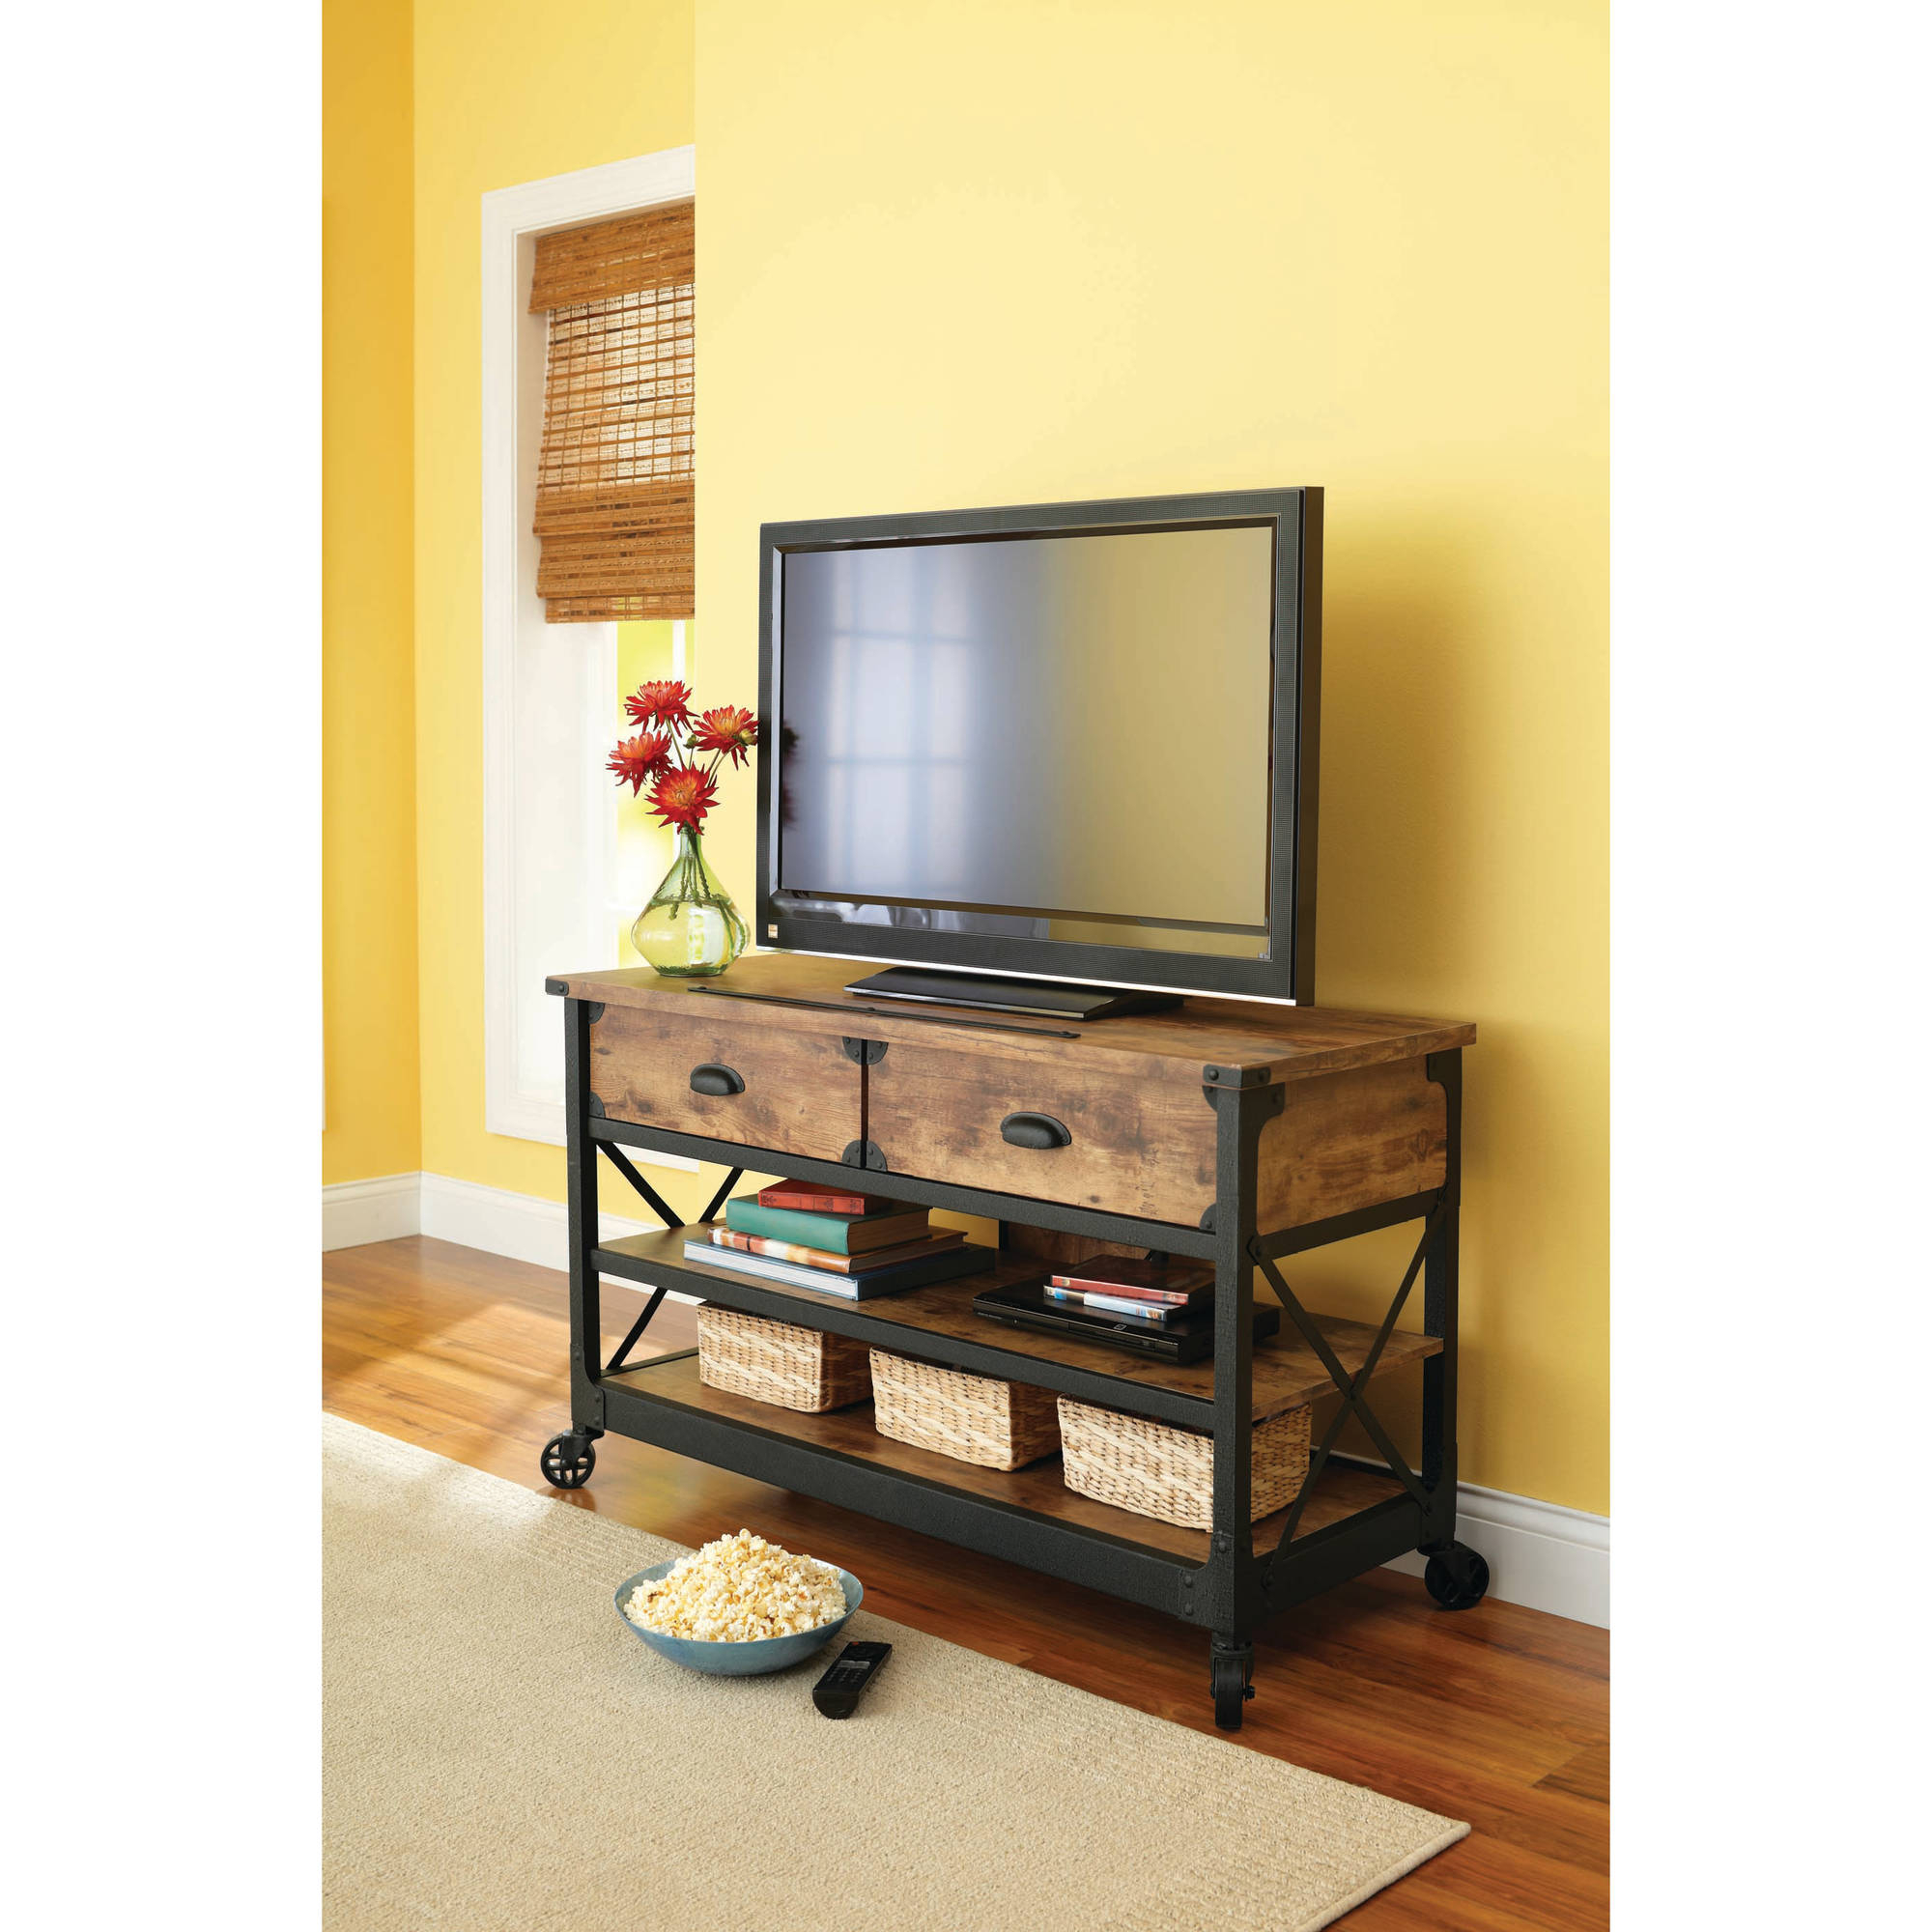 Better Homes & Gardens Rustic Country Tv Stand For Tvs Up To 52 With Regard To Well Known Country Style Tv Cabinets (View 1 of 20)